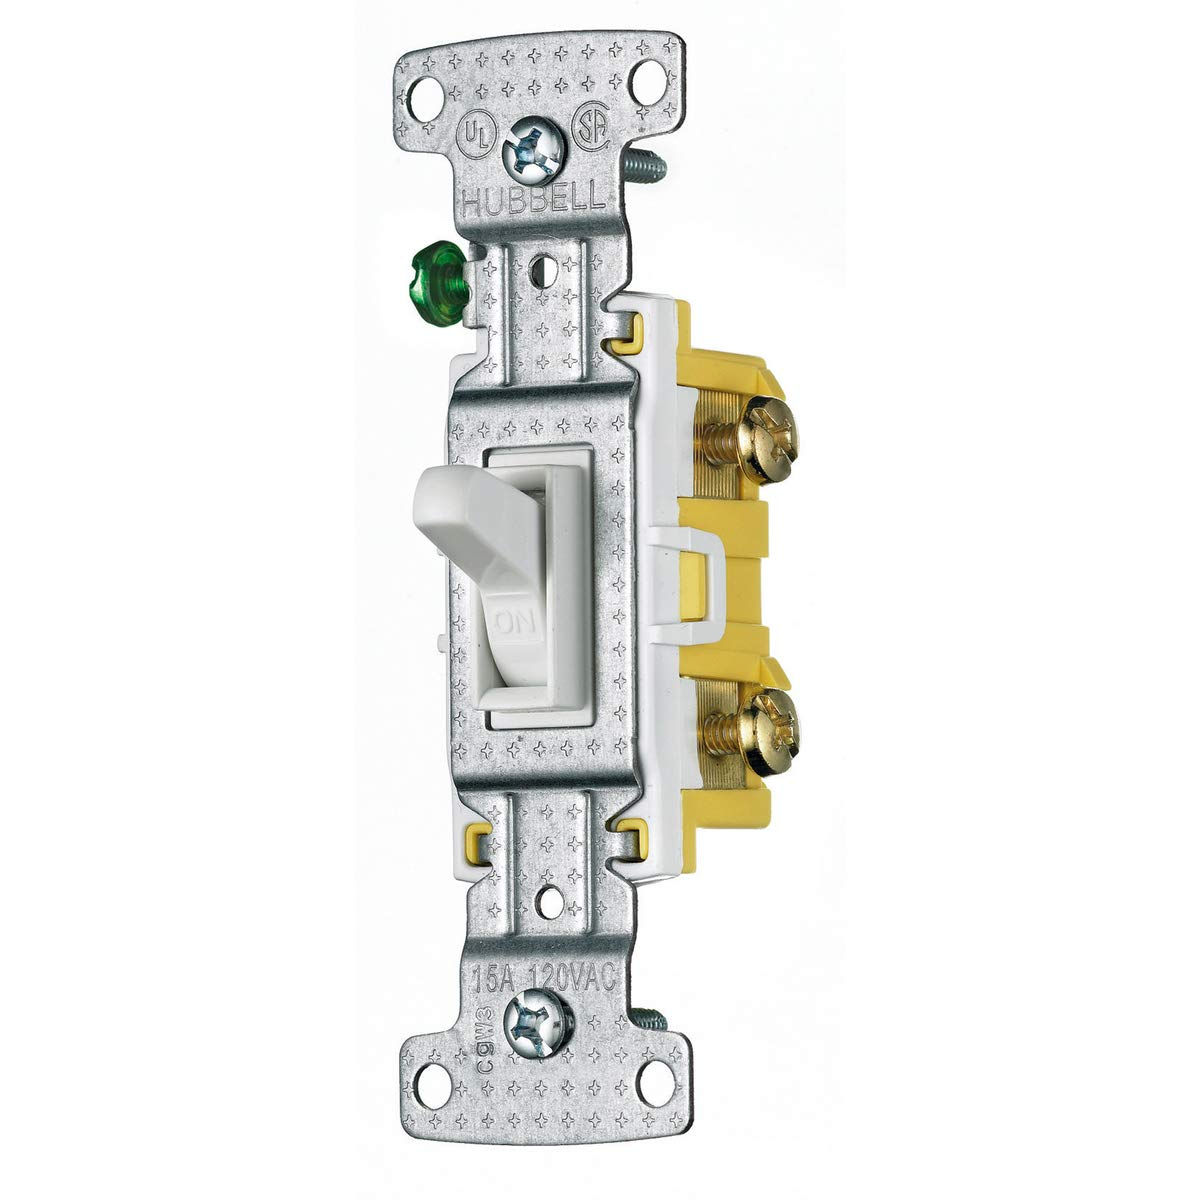 Hubbell Light Switch Wiring Diagram Seniorsclub It Solid Growth Solid Growth Pietrodavico It